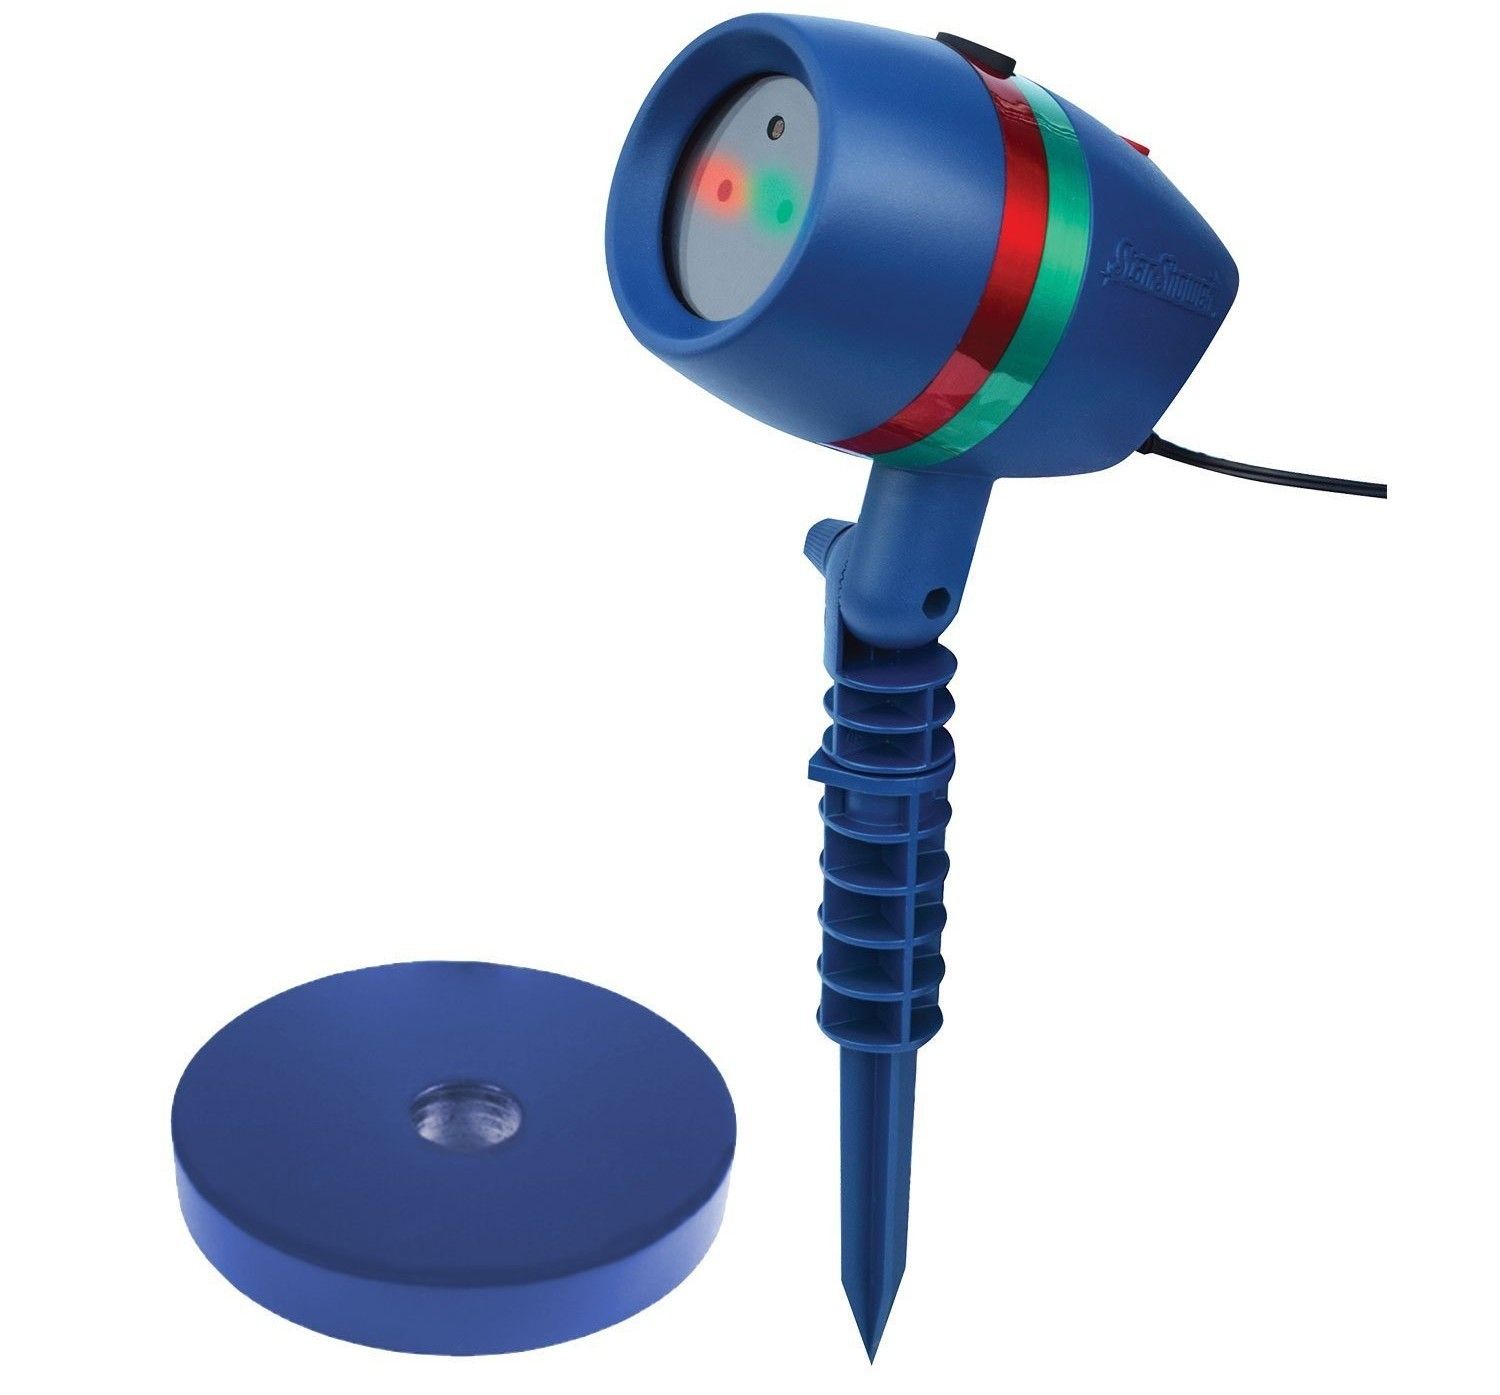 Star map projector lamp - A Star Projector Is An Electrical Device That Can Project The Appearance Of A Galaxy And Beautiful Stars On Ceilings Walls Or On Other Screens Using Light